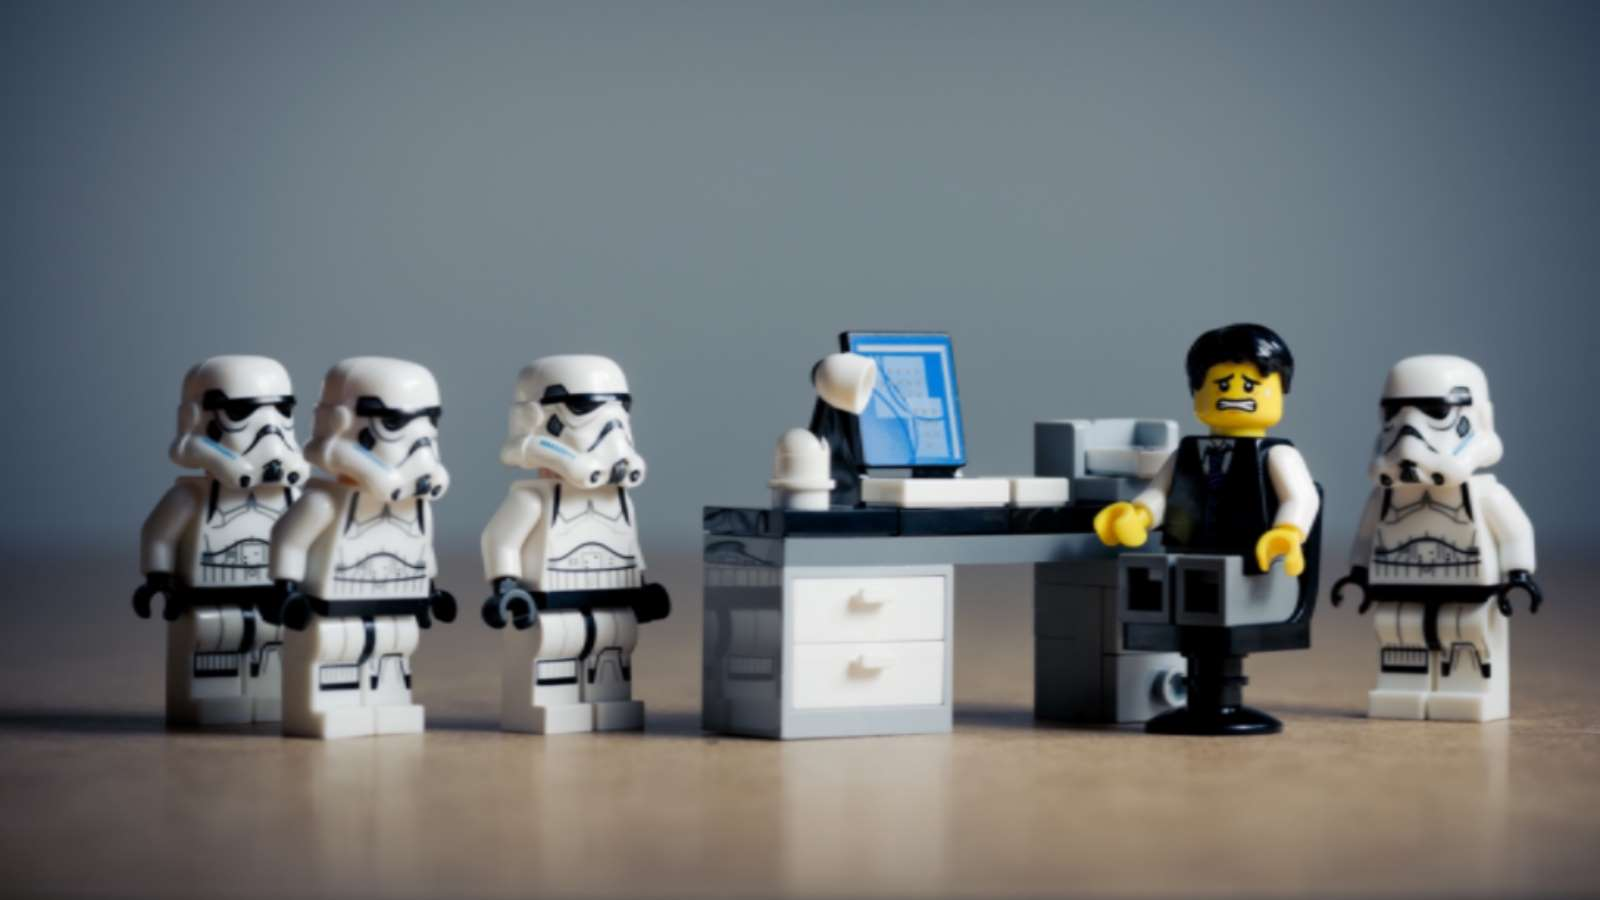 Joining an agile team… is it really the dark side?